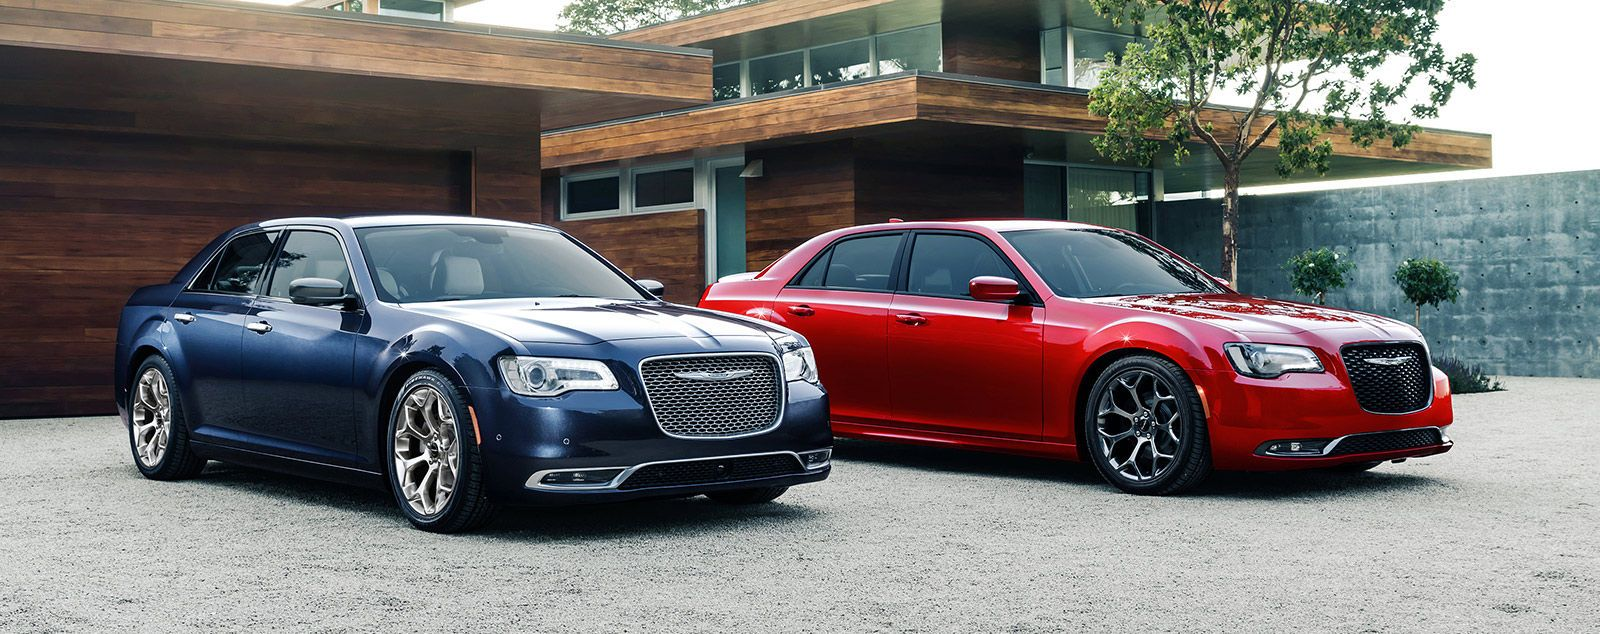 Kia Cadenza v Chrysler 300C Both Spacious Luxurious Sedans